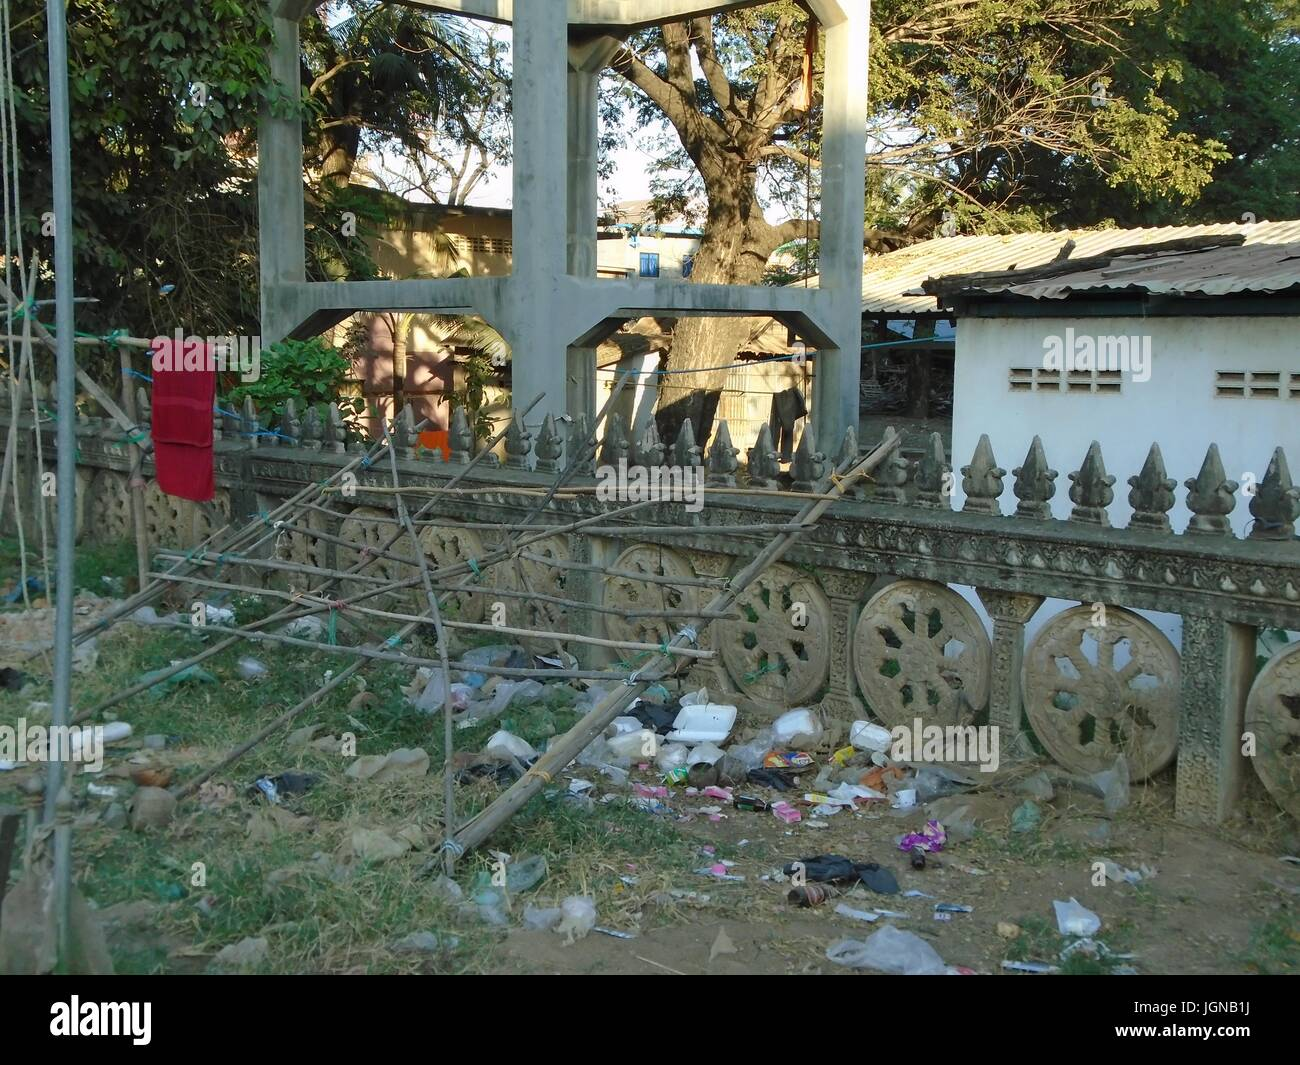 Concrete Fence Decorative Traditional Poipet Cambodia Decrepit Impoverished Town on the Thailand Border Line - Stock Image